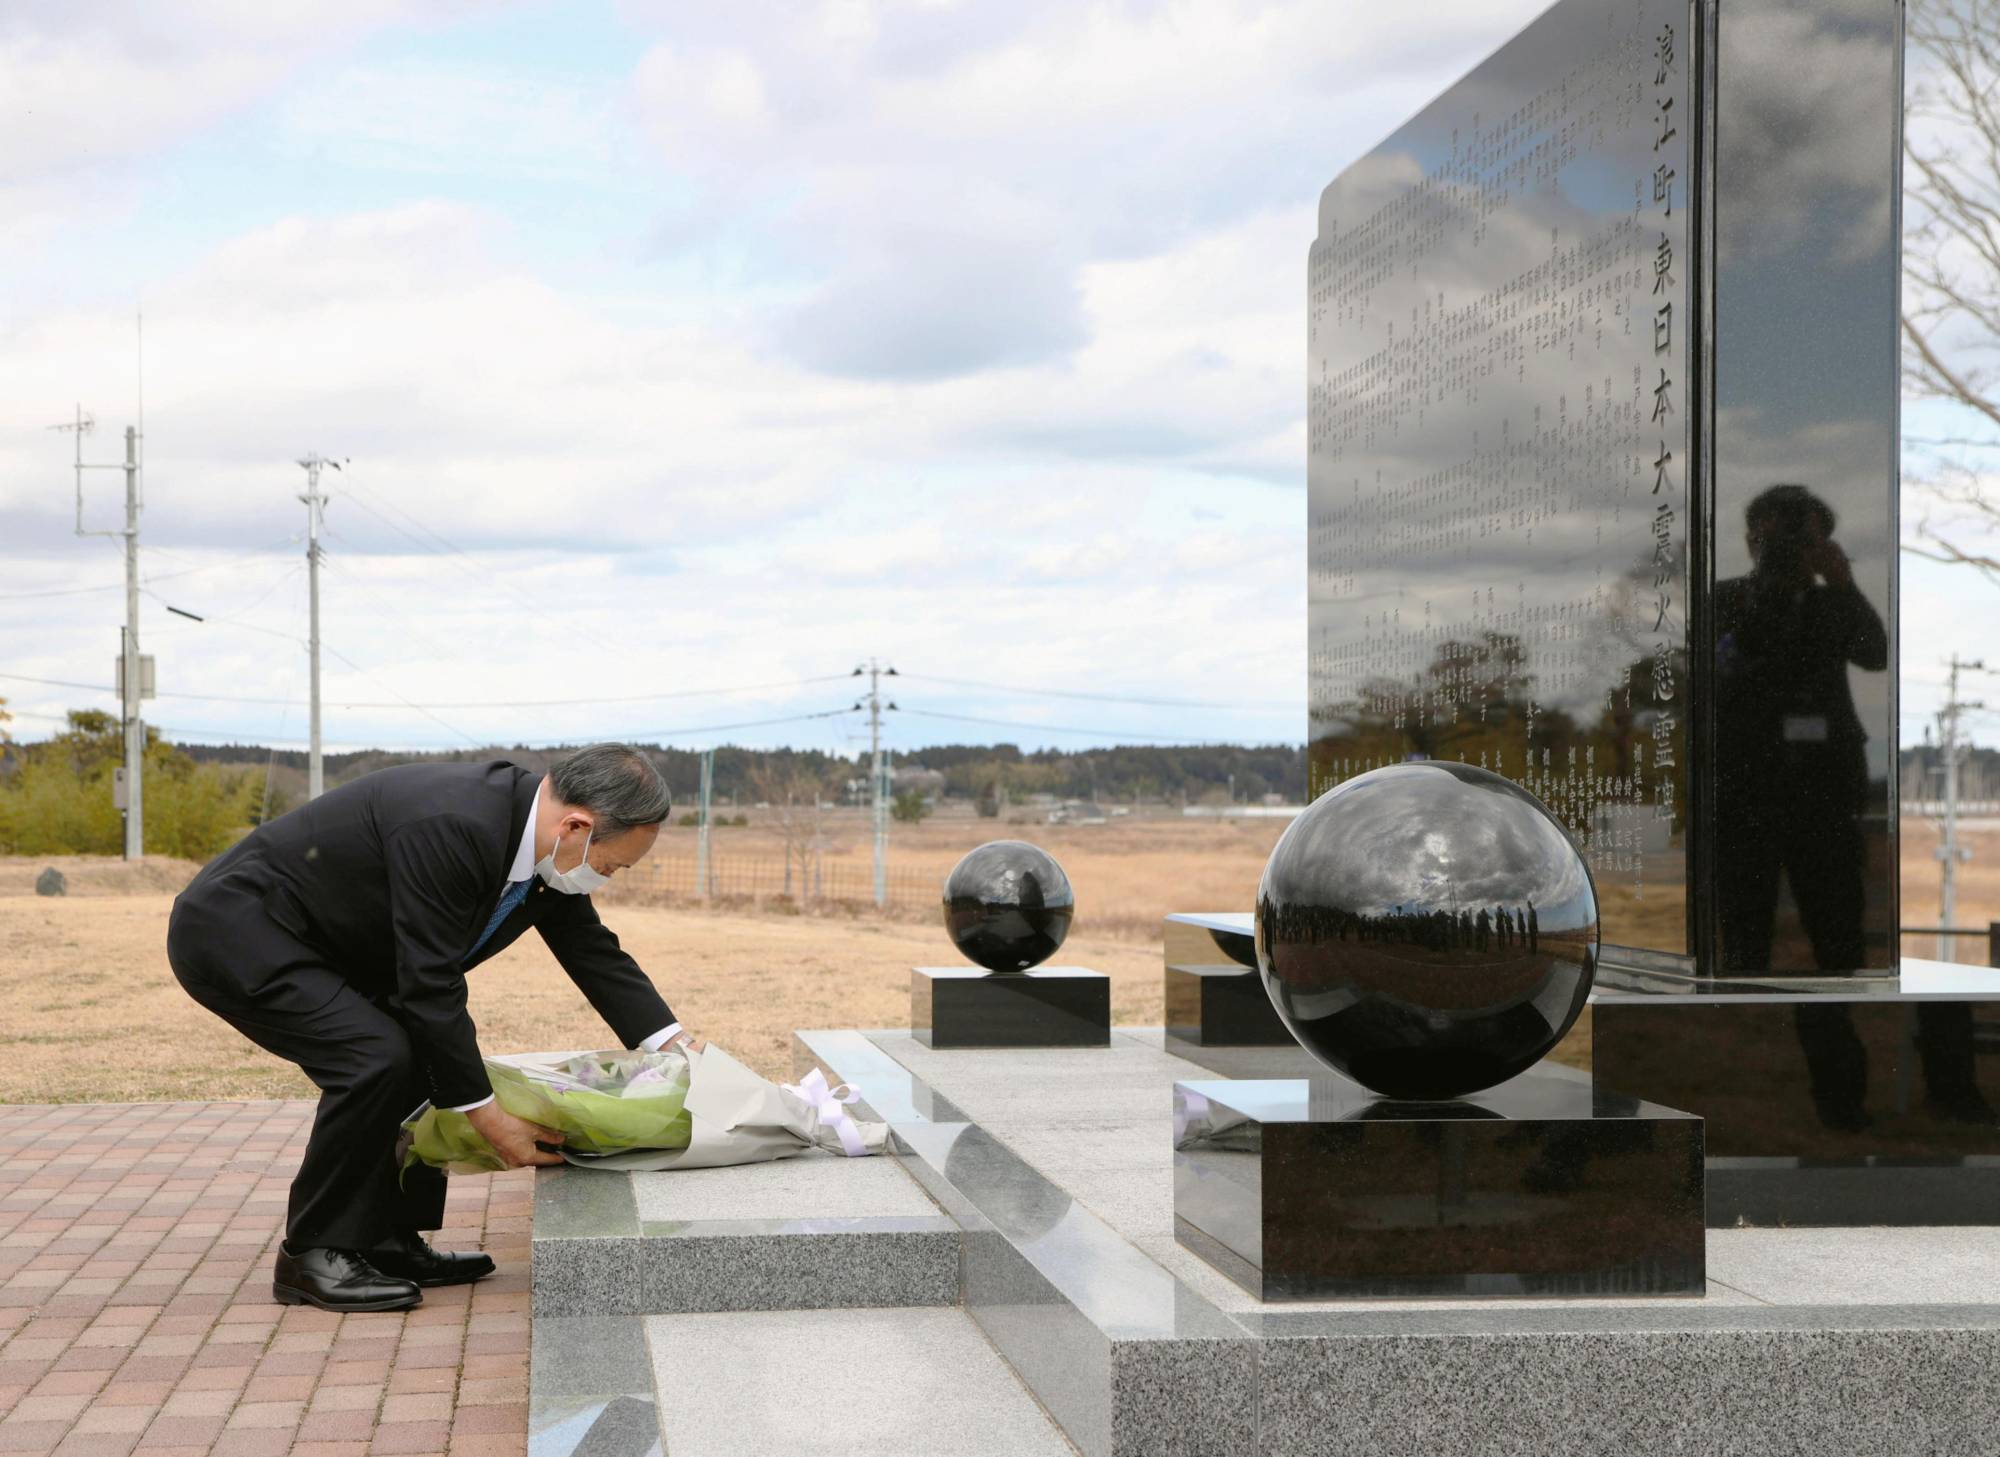 Prime Minister Yoshihide Suga offers flowers at the Great East Japan Earthquake cenotaph in Namie, Fukushima Prefecture, on Saturday. | POOL / VIA KYODO